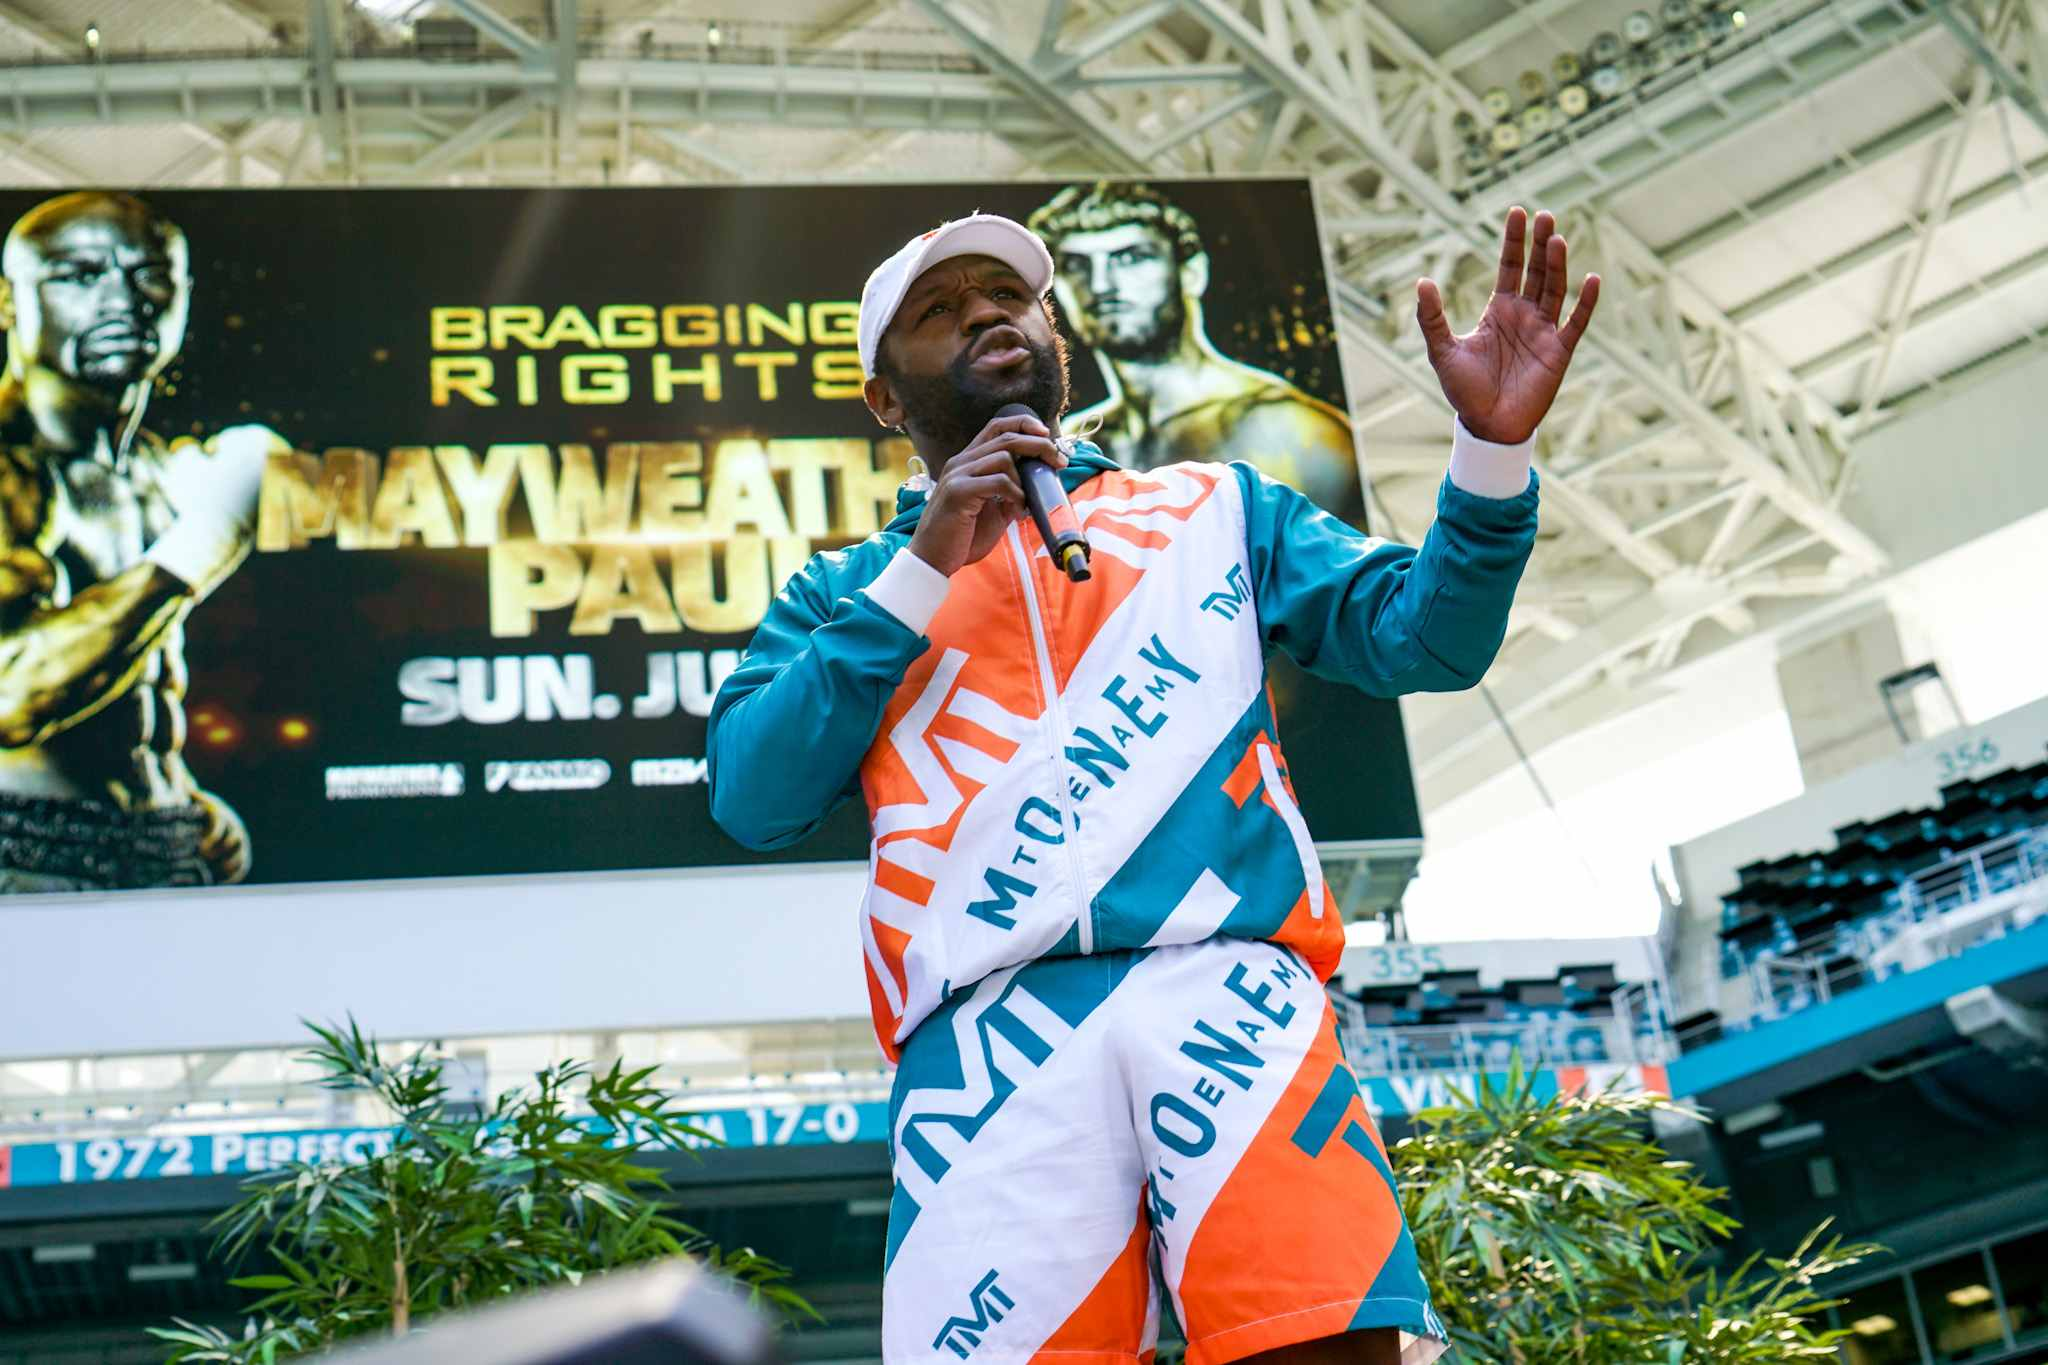 Conor McGregor Reacts To Mayweather Altercation In Miami